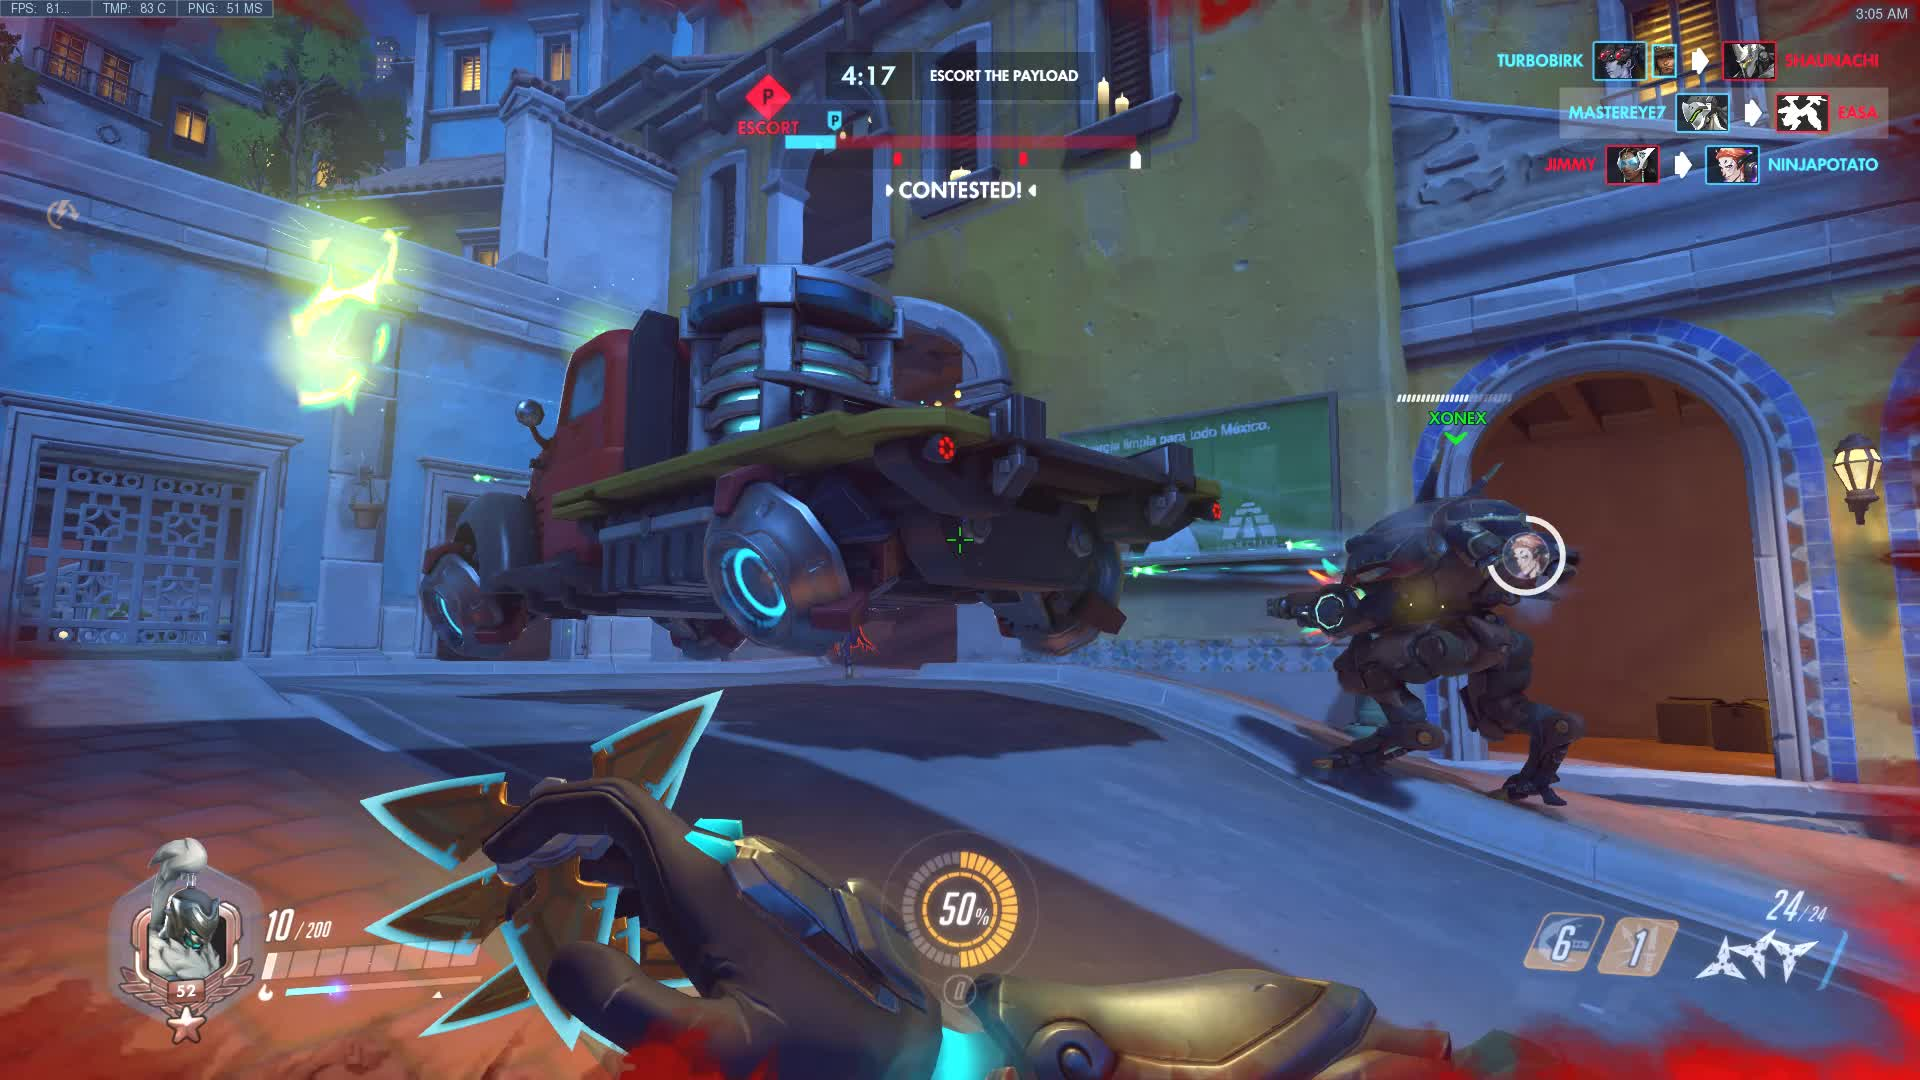 vlc-record-2018-03-04-03h12m39s-Overwatch 03.04.2018 - 03.05.56.12.DVR.mp4- GIFs